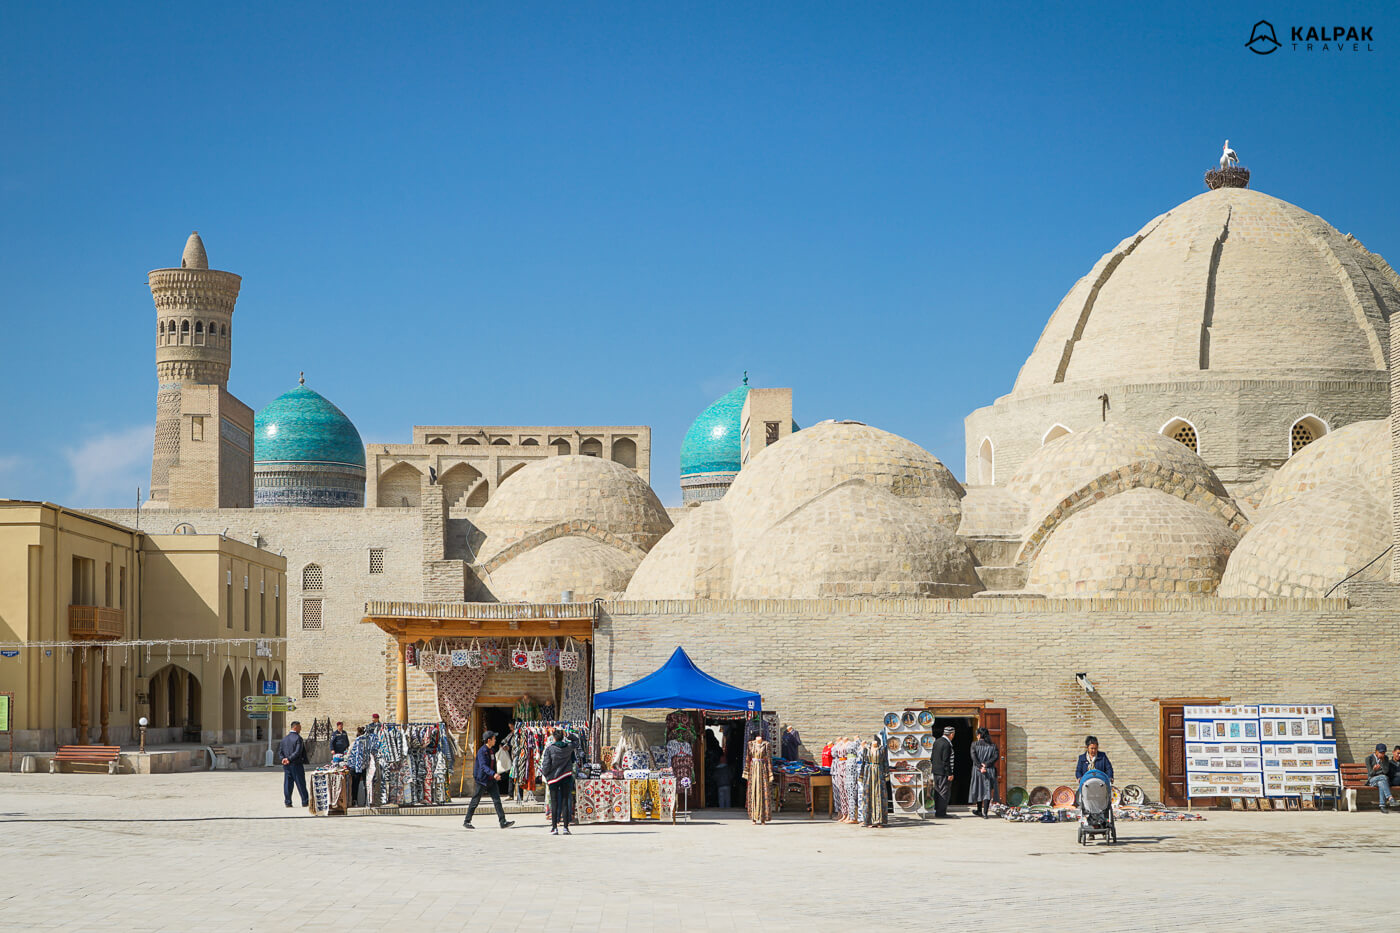 Bukhara markets with its clay domes in Uzbekistan